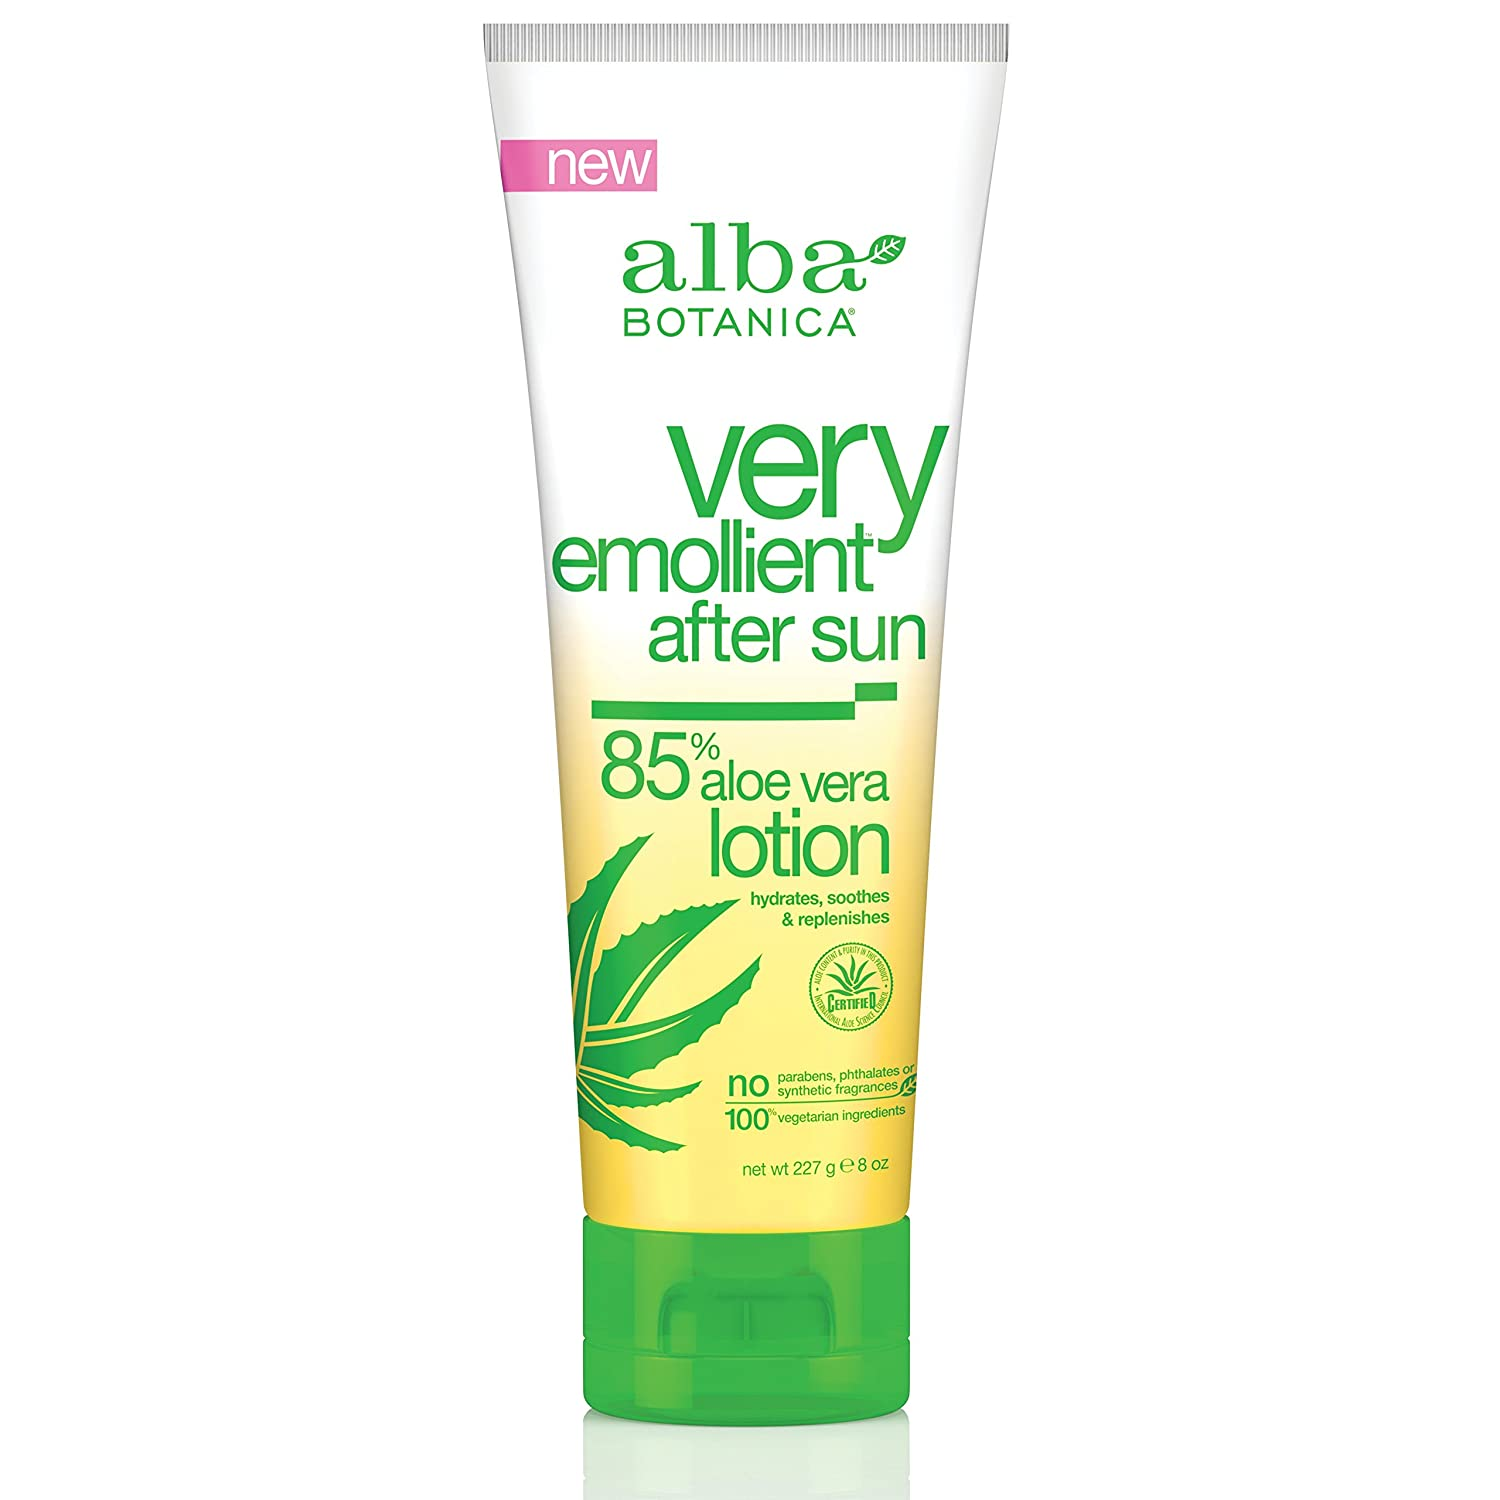 Alba Botanica Very Emollient After Sun Lotion - 85% Aloe Vera - 8 oz AL00402